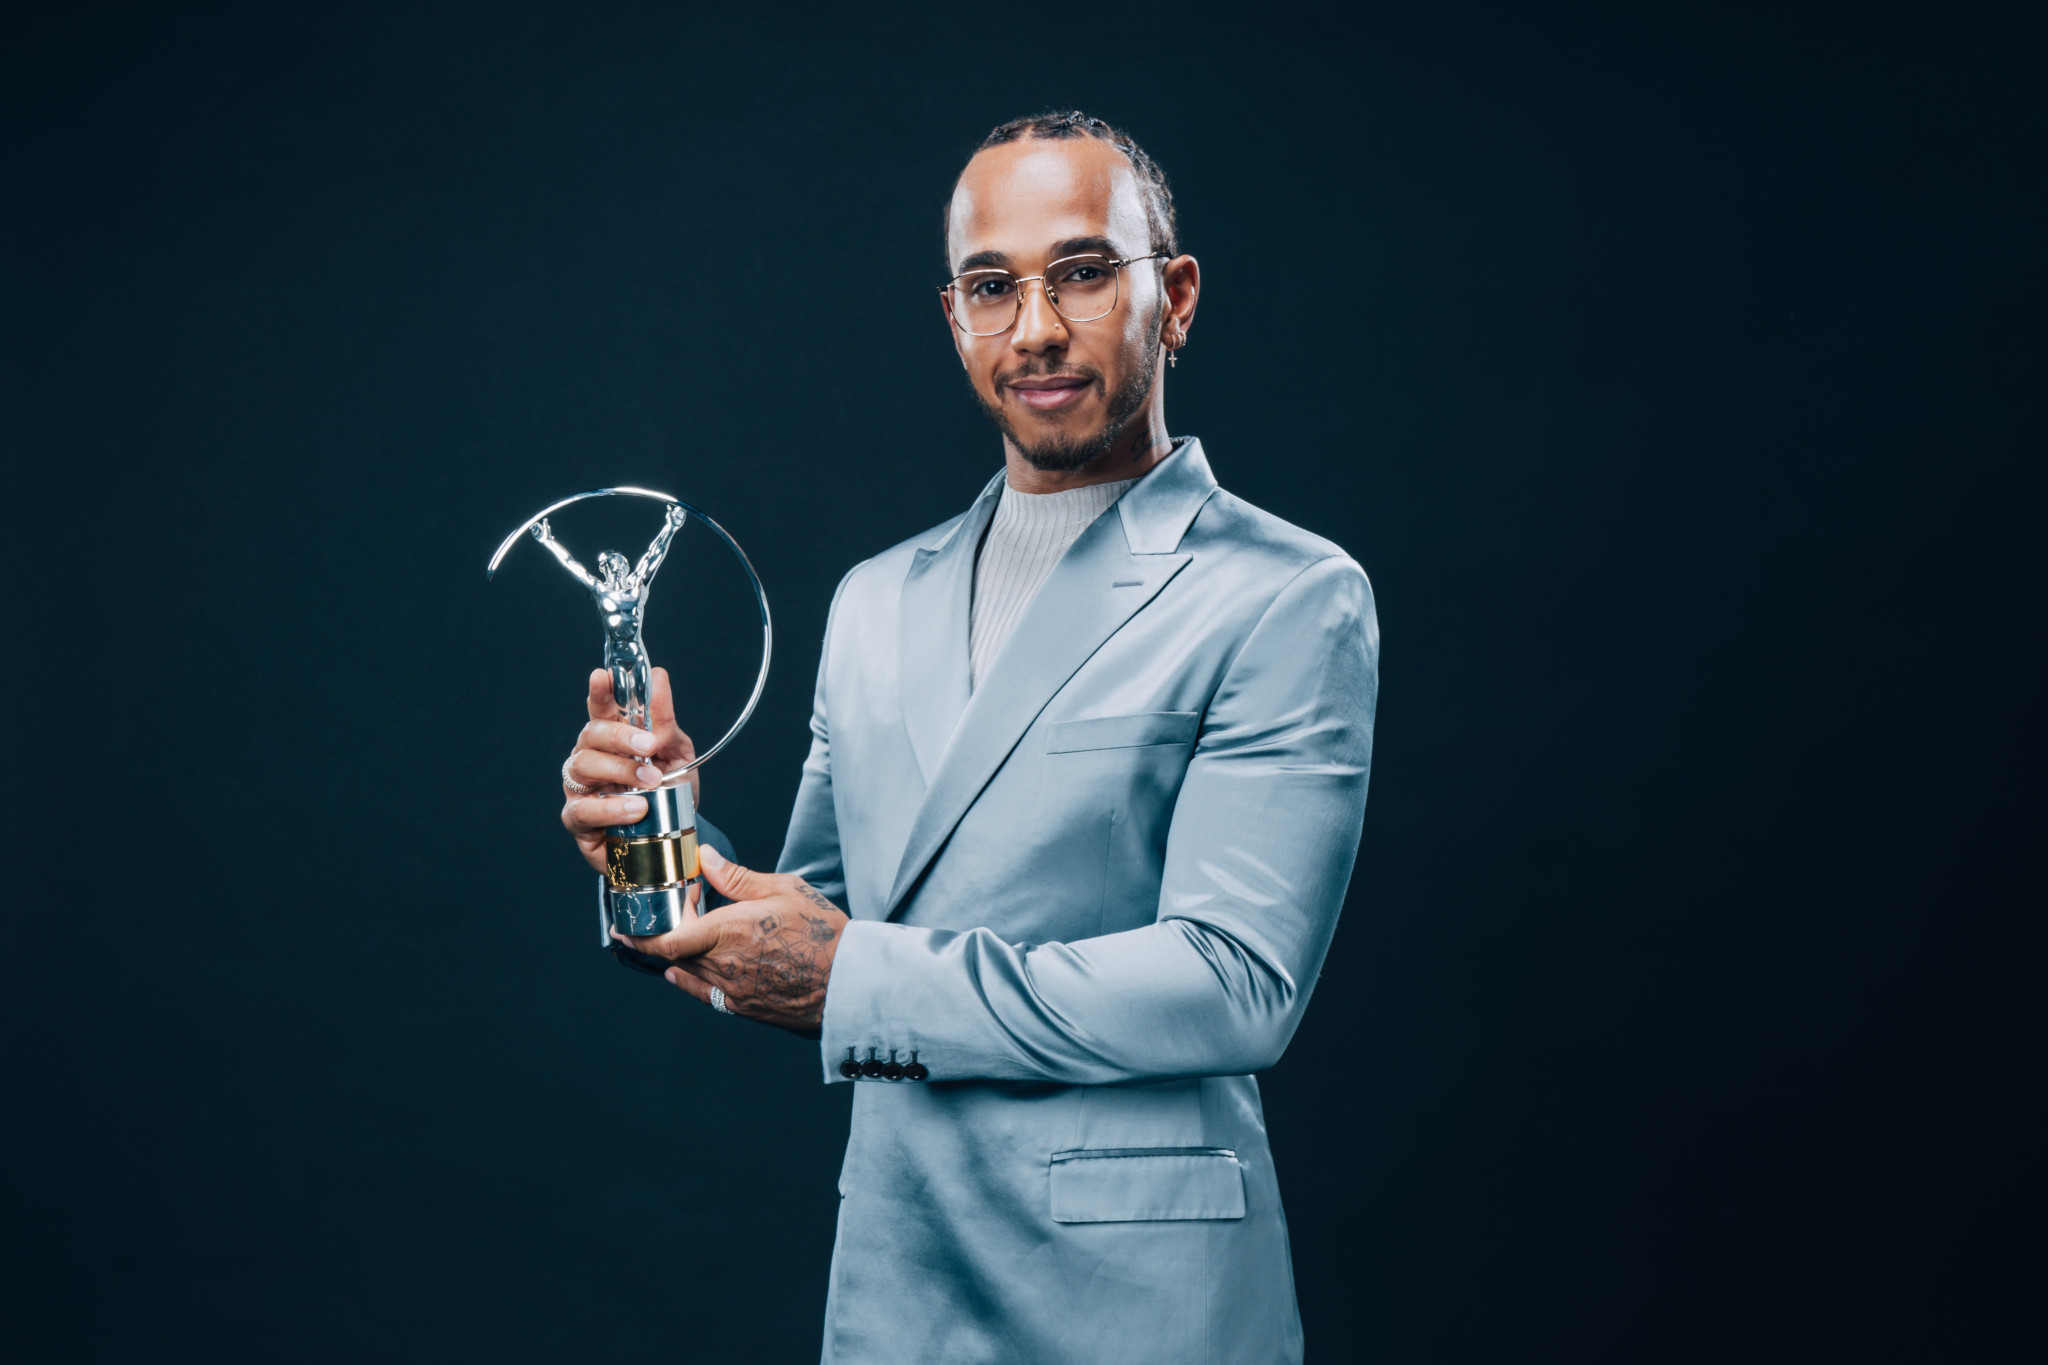 Lewis Hamilton poses with the award he shares with Lionel Messi ©Getty Images